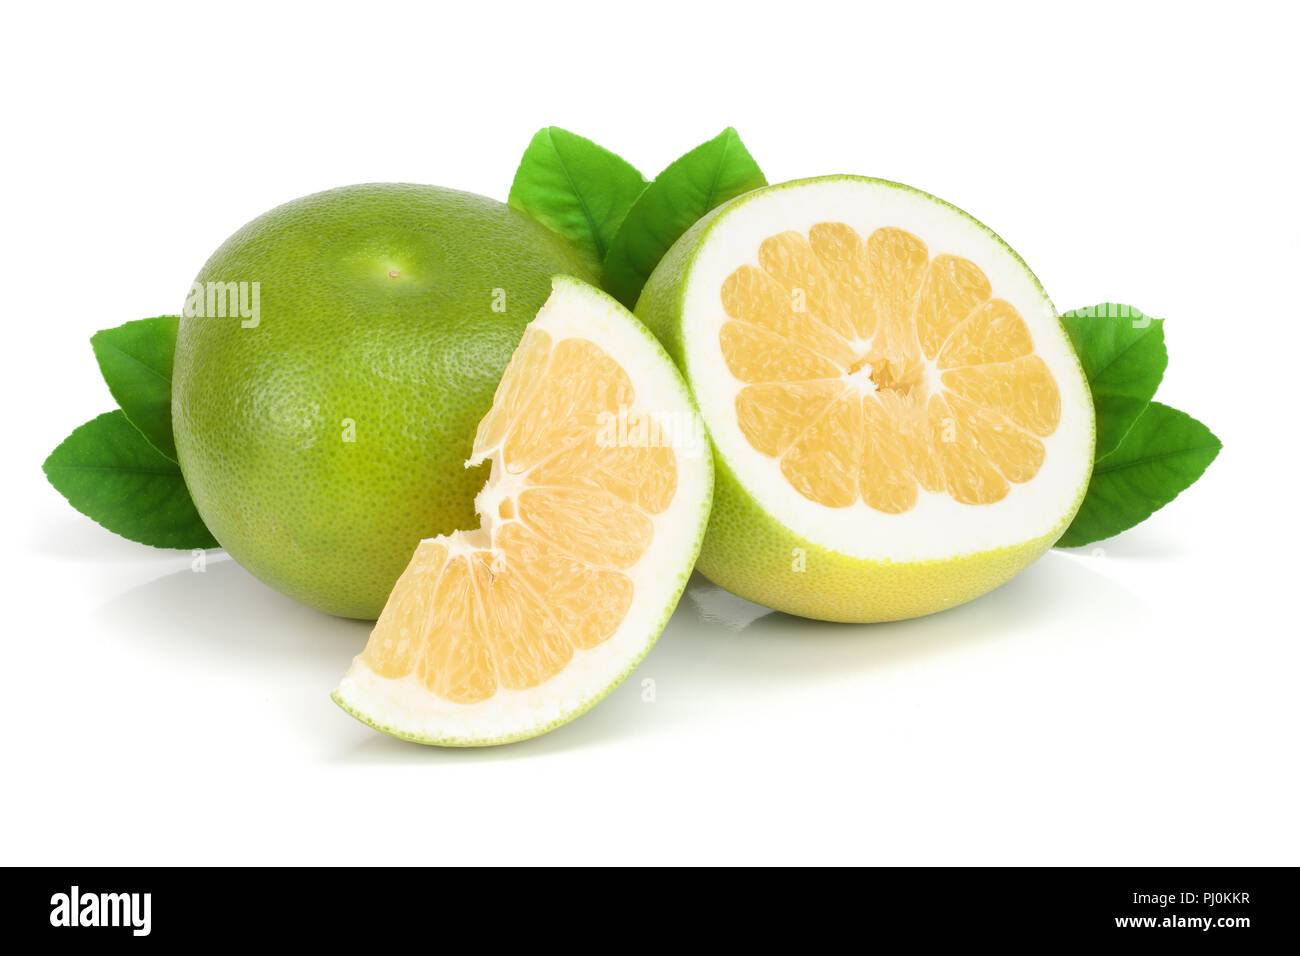 Citrus Sweetie or Pomelit, oroblanco with slices and leaf isolated on white background close-up. - Stock Image